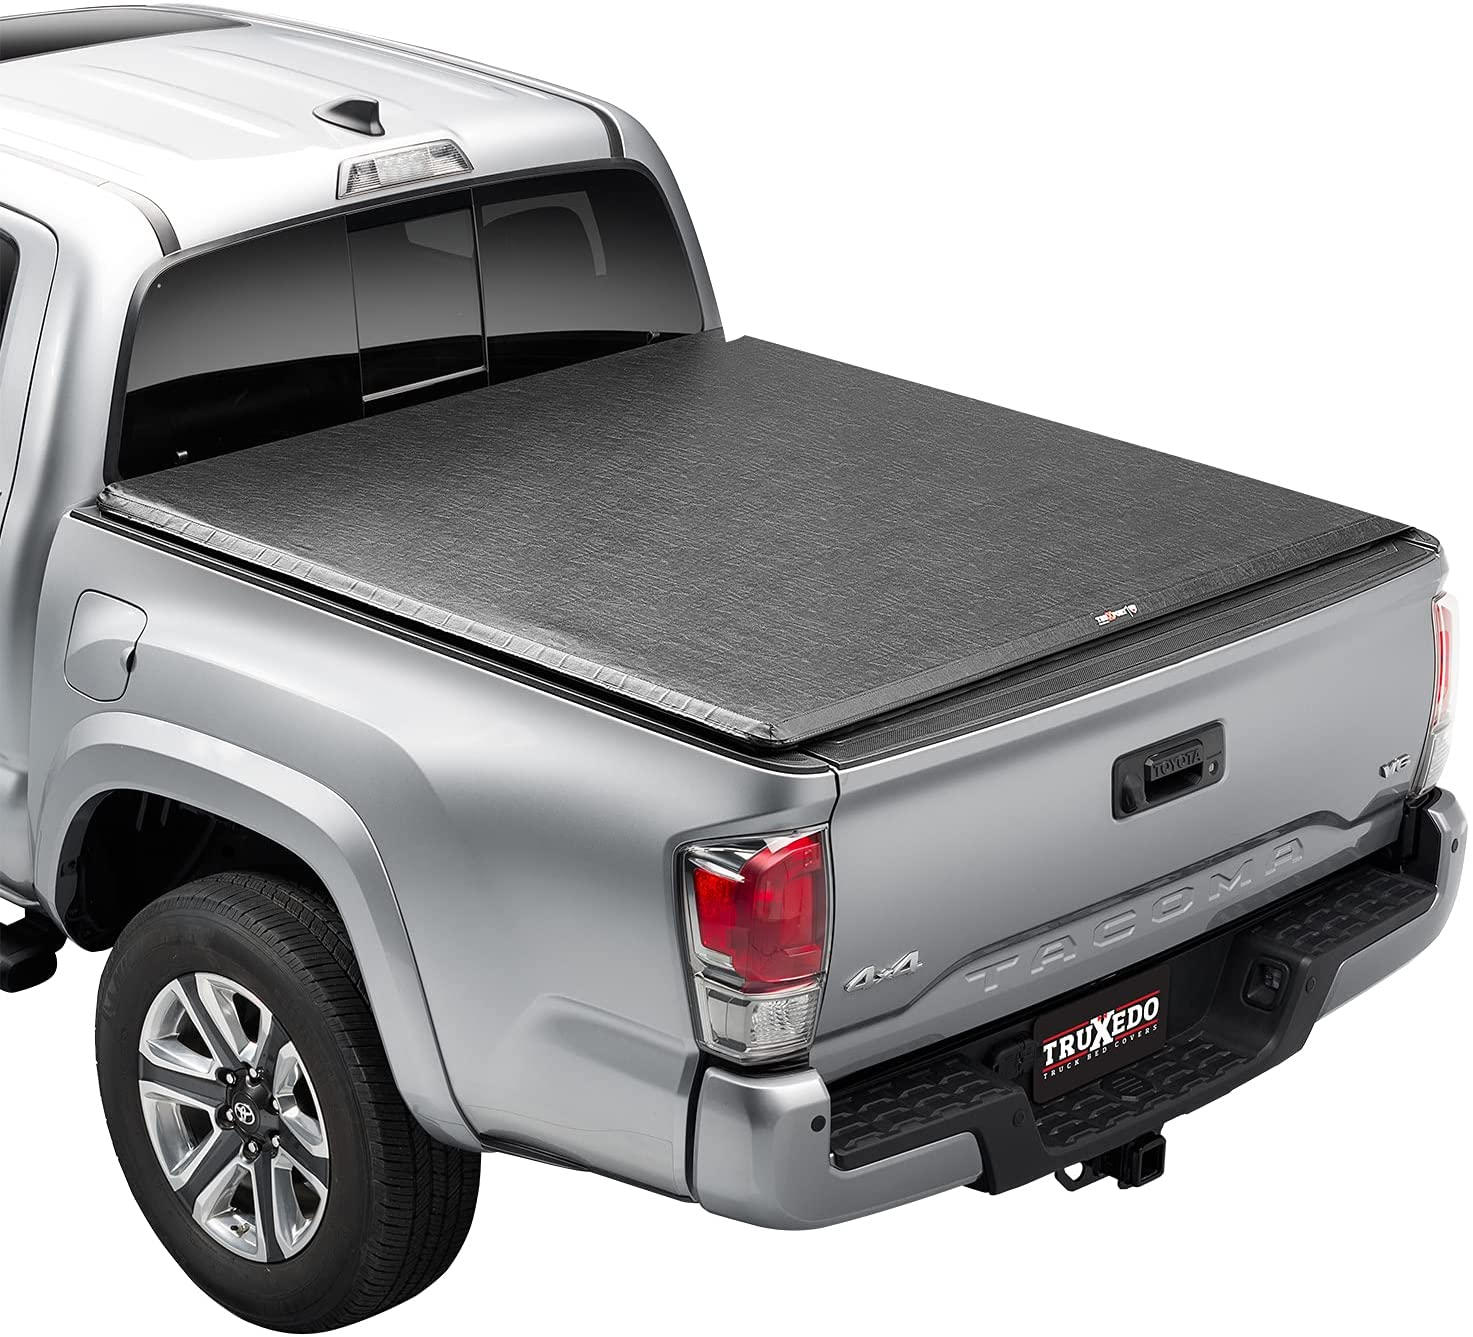 TruXedo TruXport Soft Roll-Up Truck Bed Tonneau Cover for Nissan Frontier